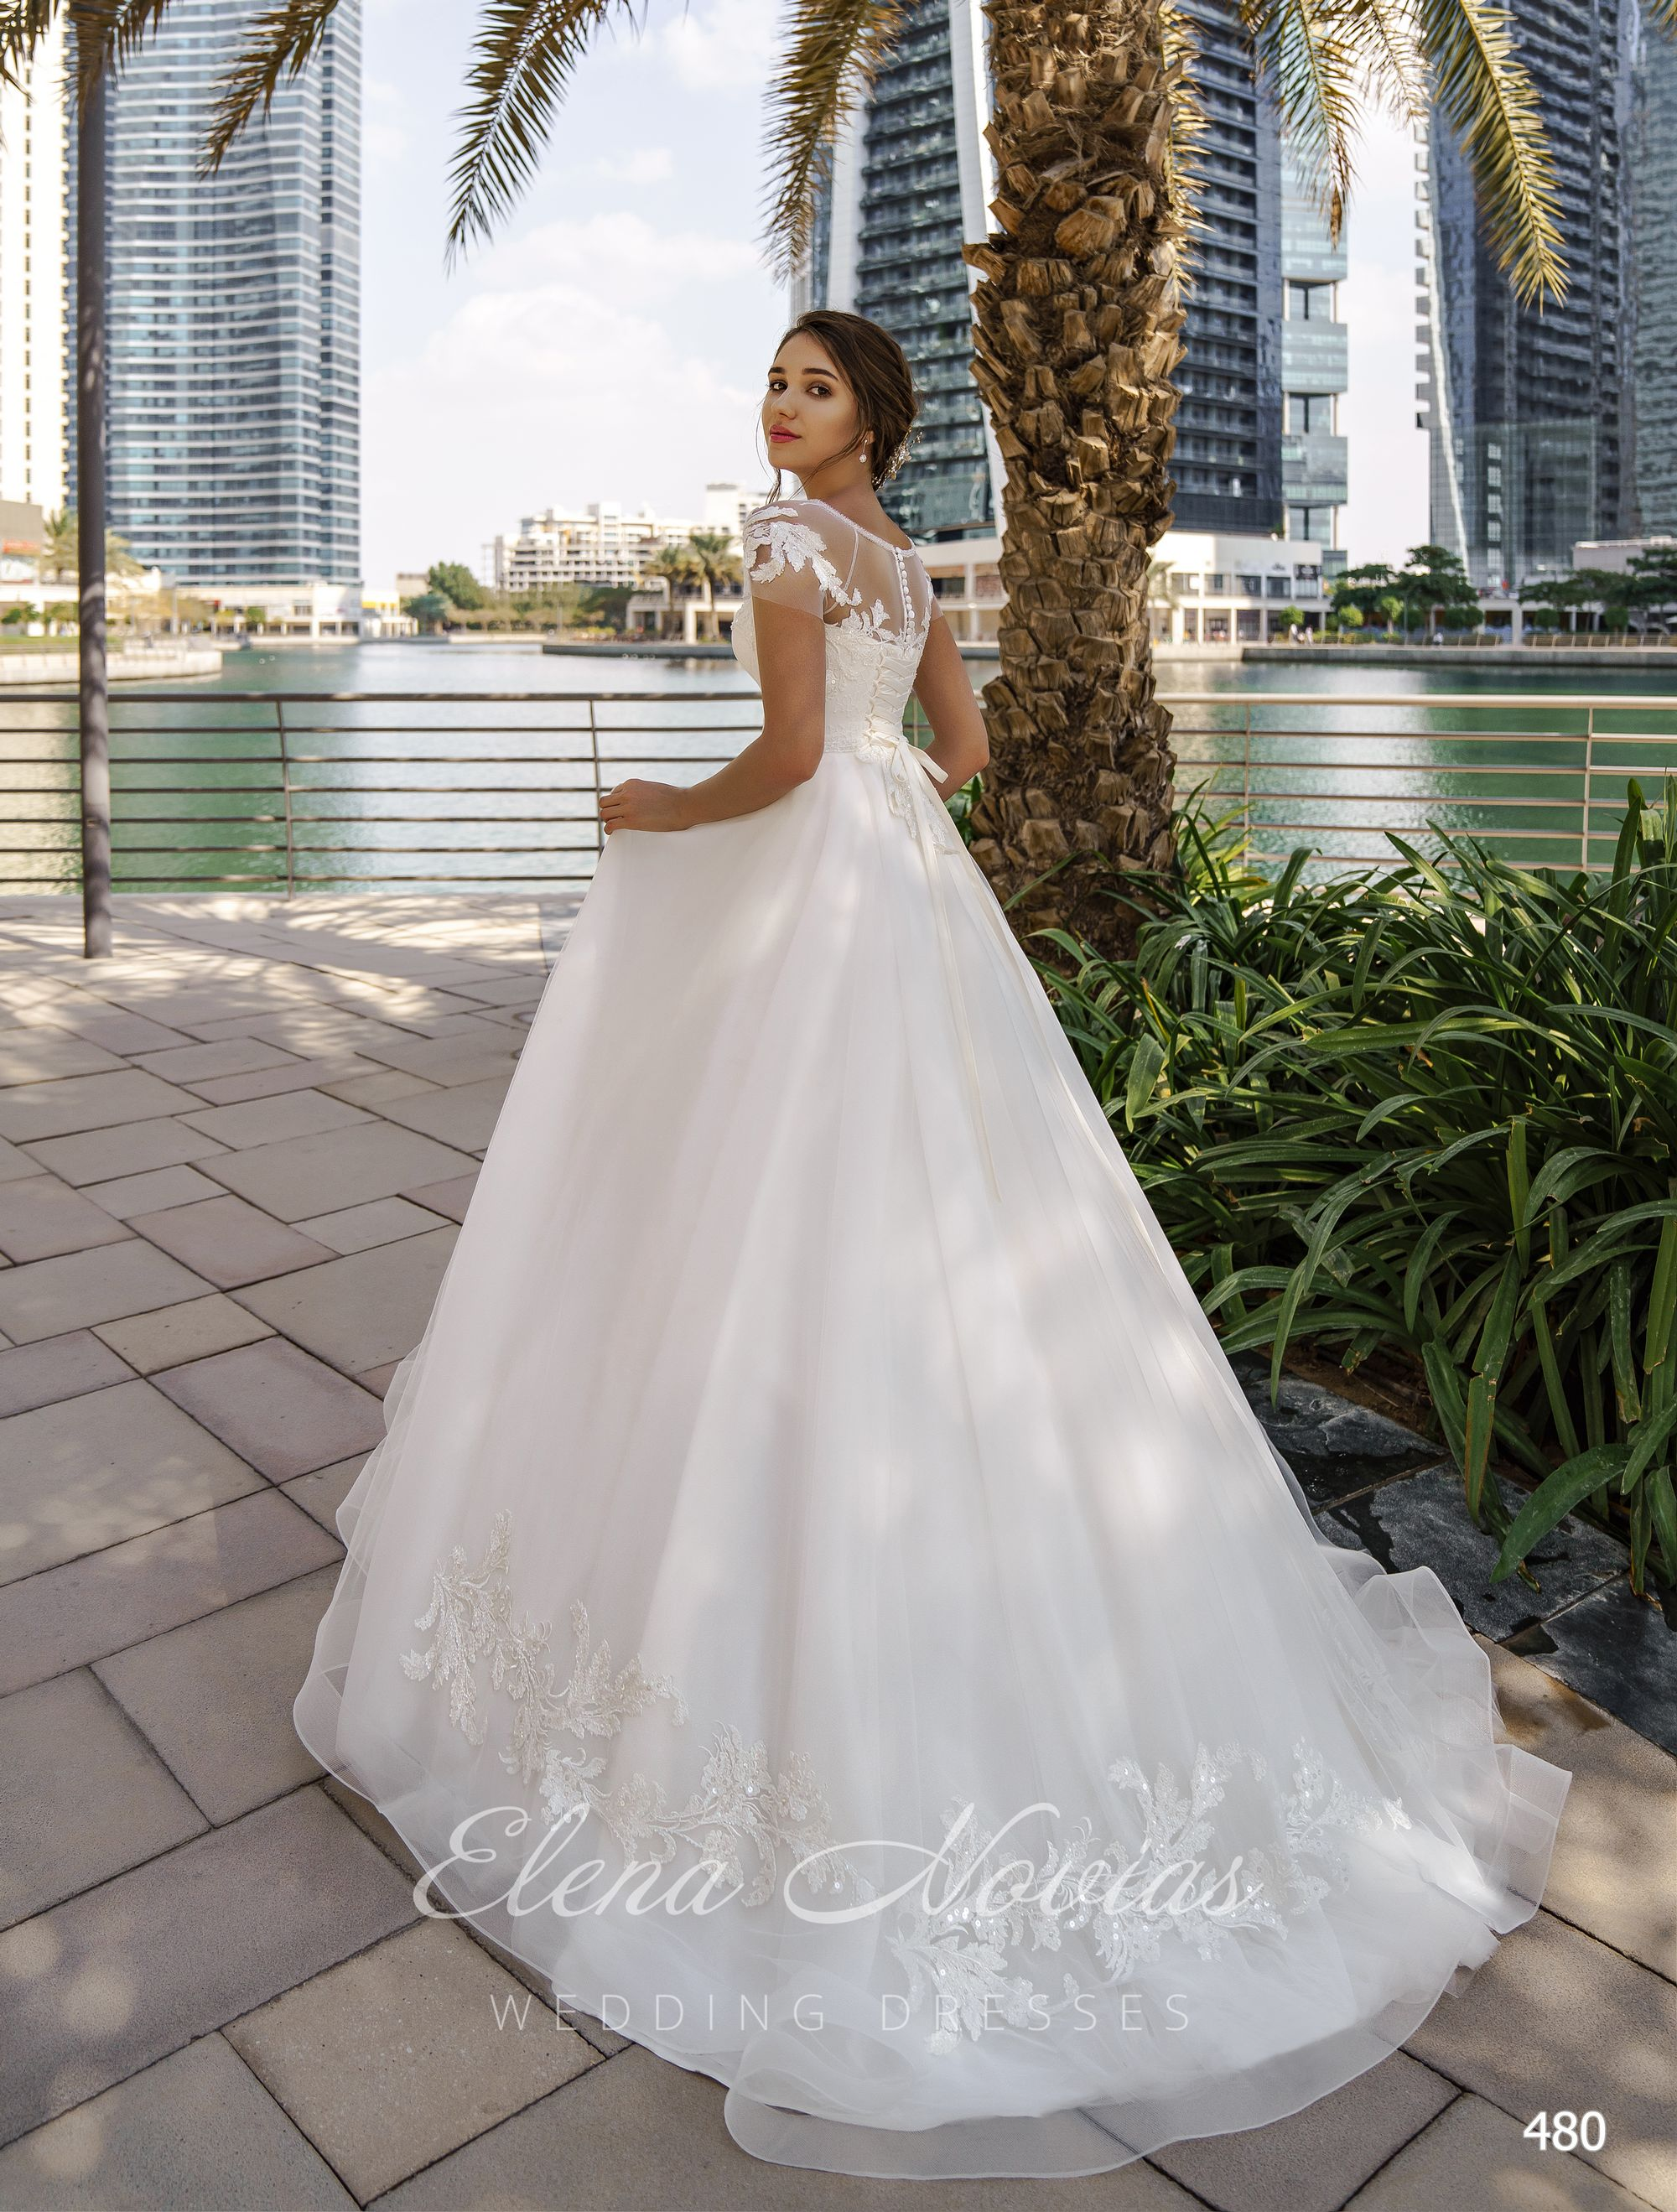 Wedding dresses 480 2